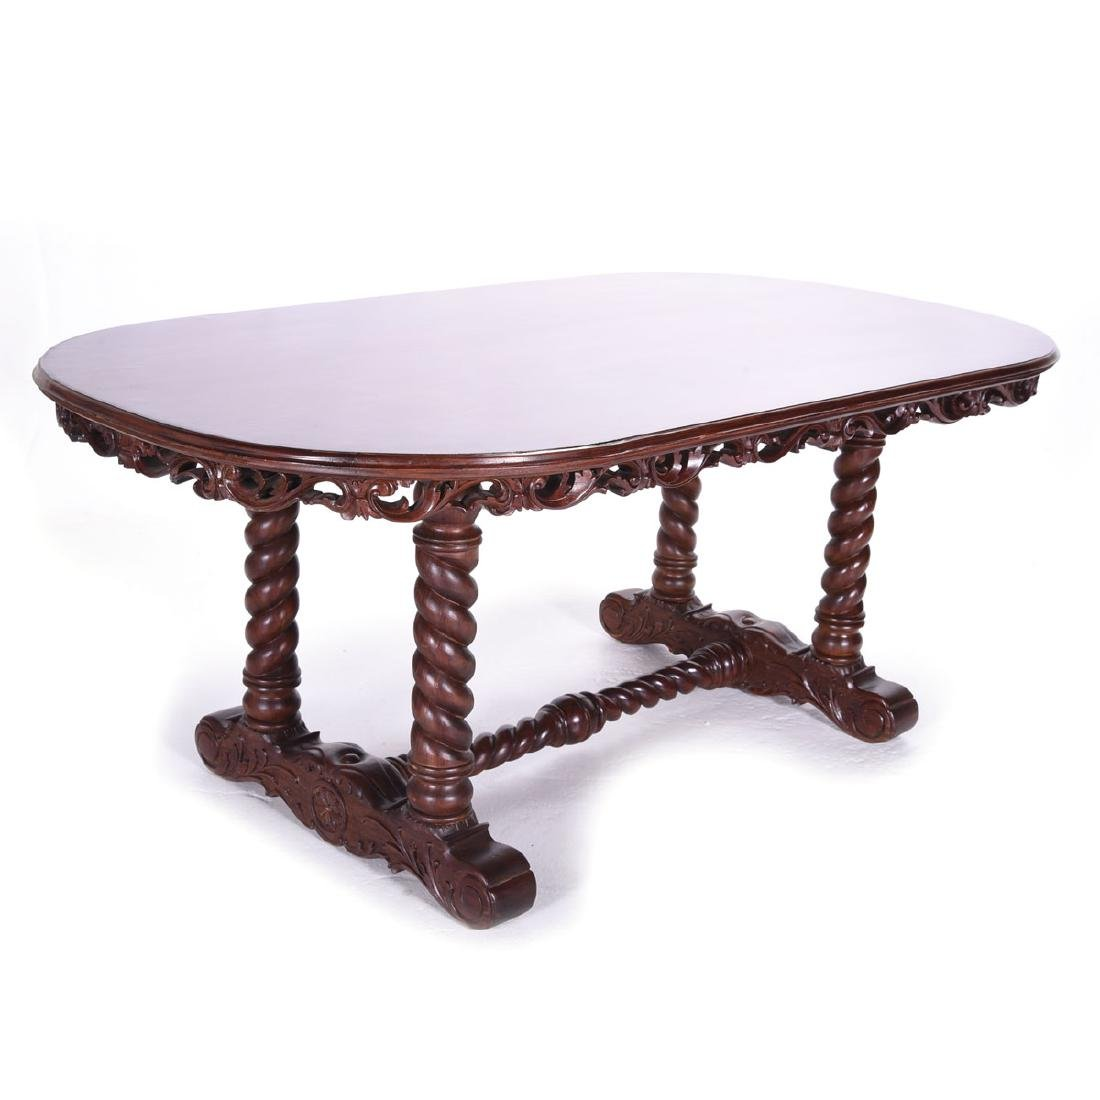 Renaissance Style Barley Twist Refectory Table, with